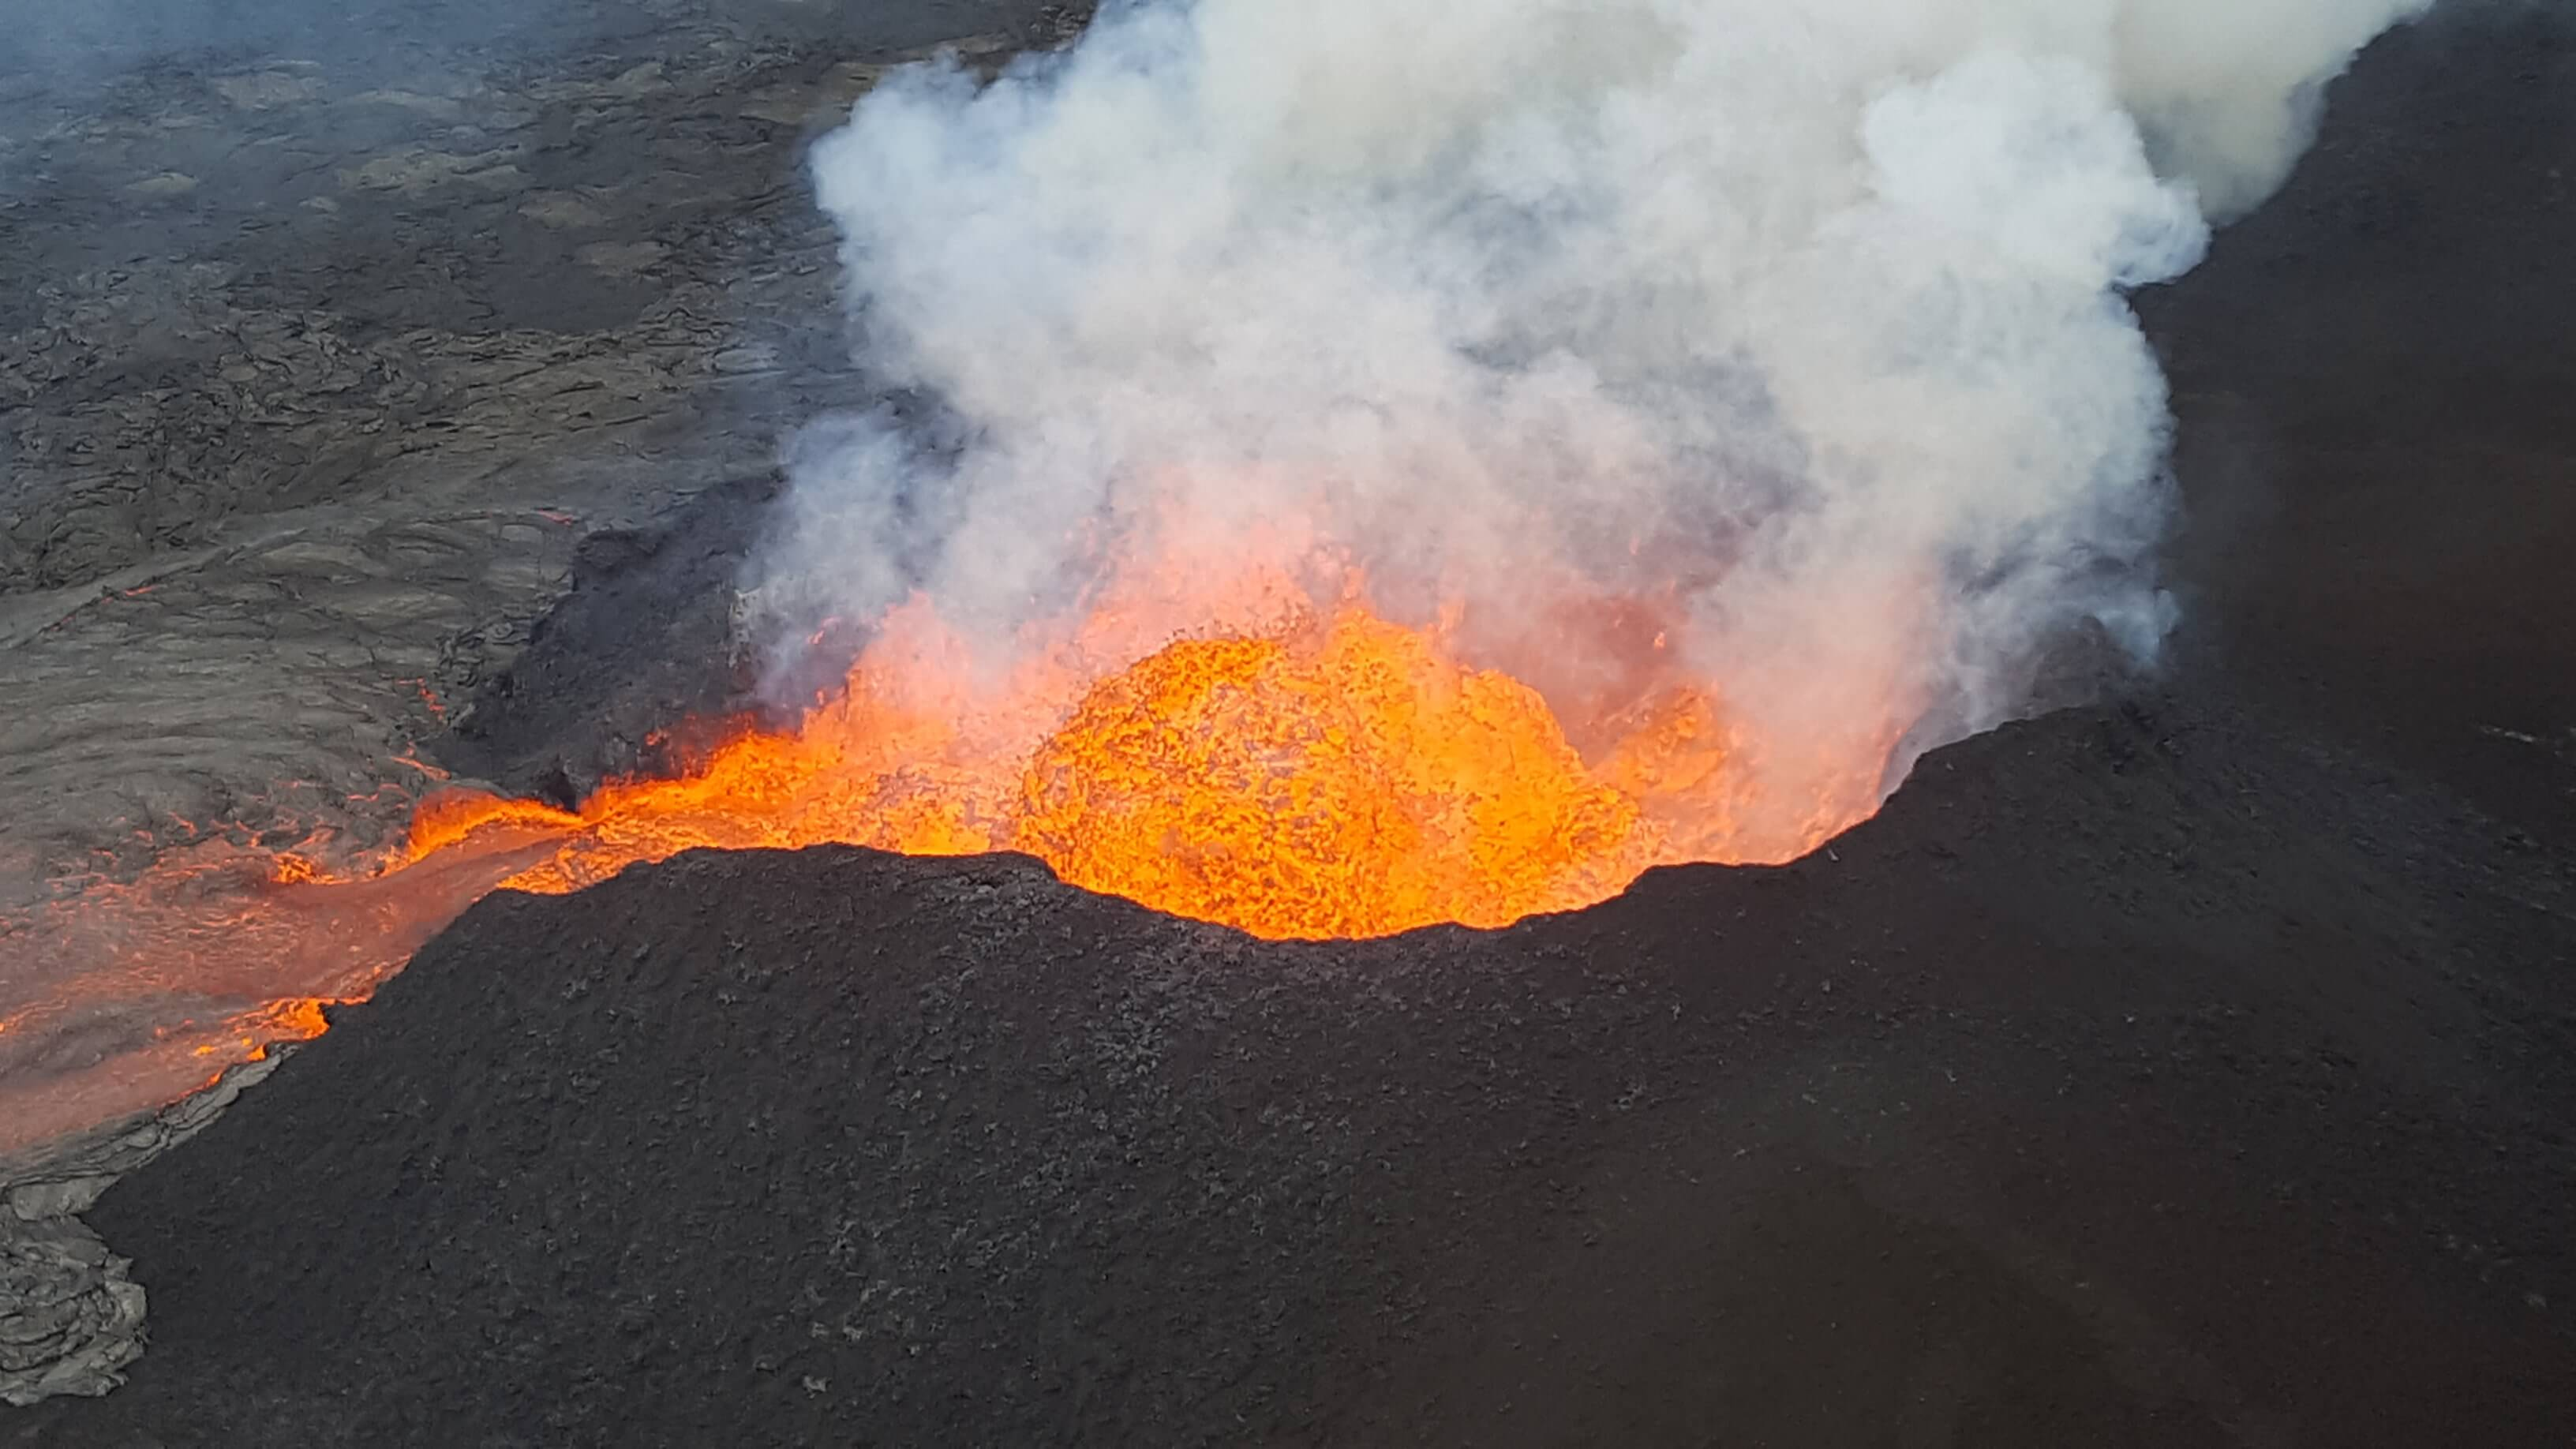 Kilauea Volcano in Hawaii: Description, Interesting Facts 81